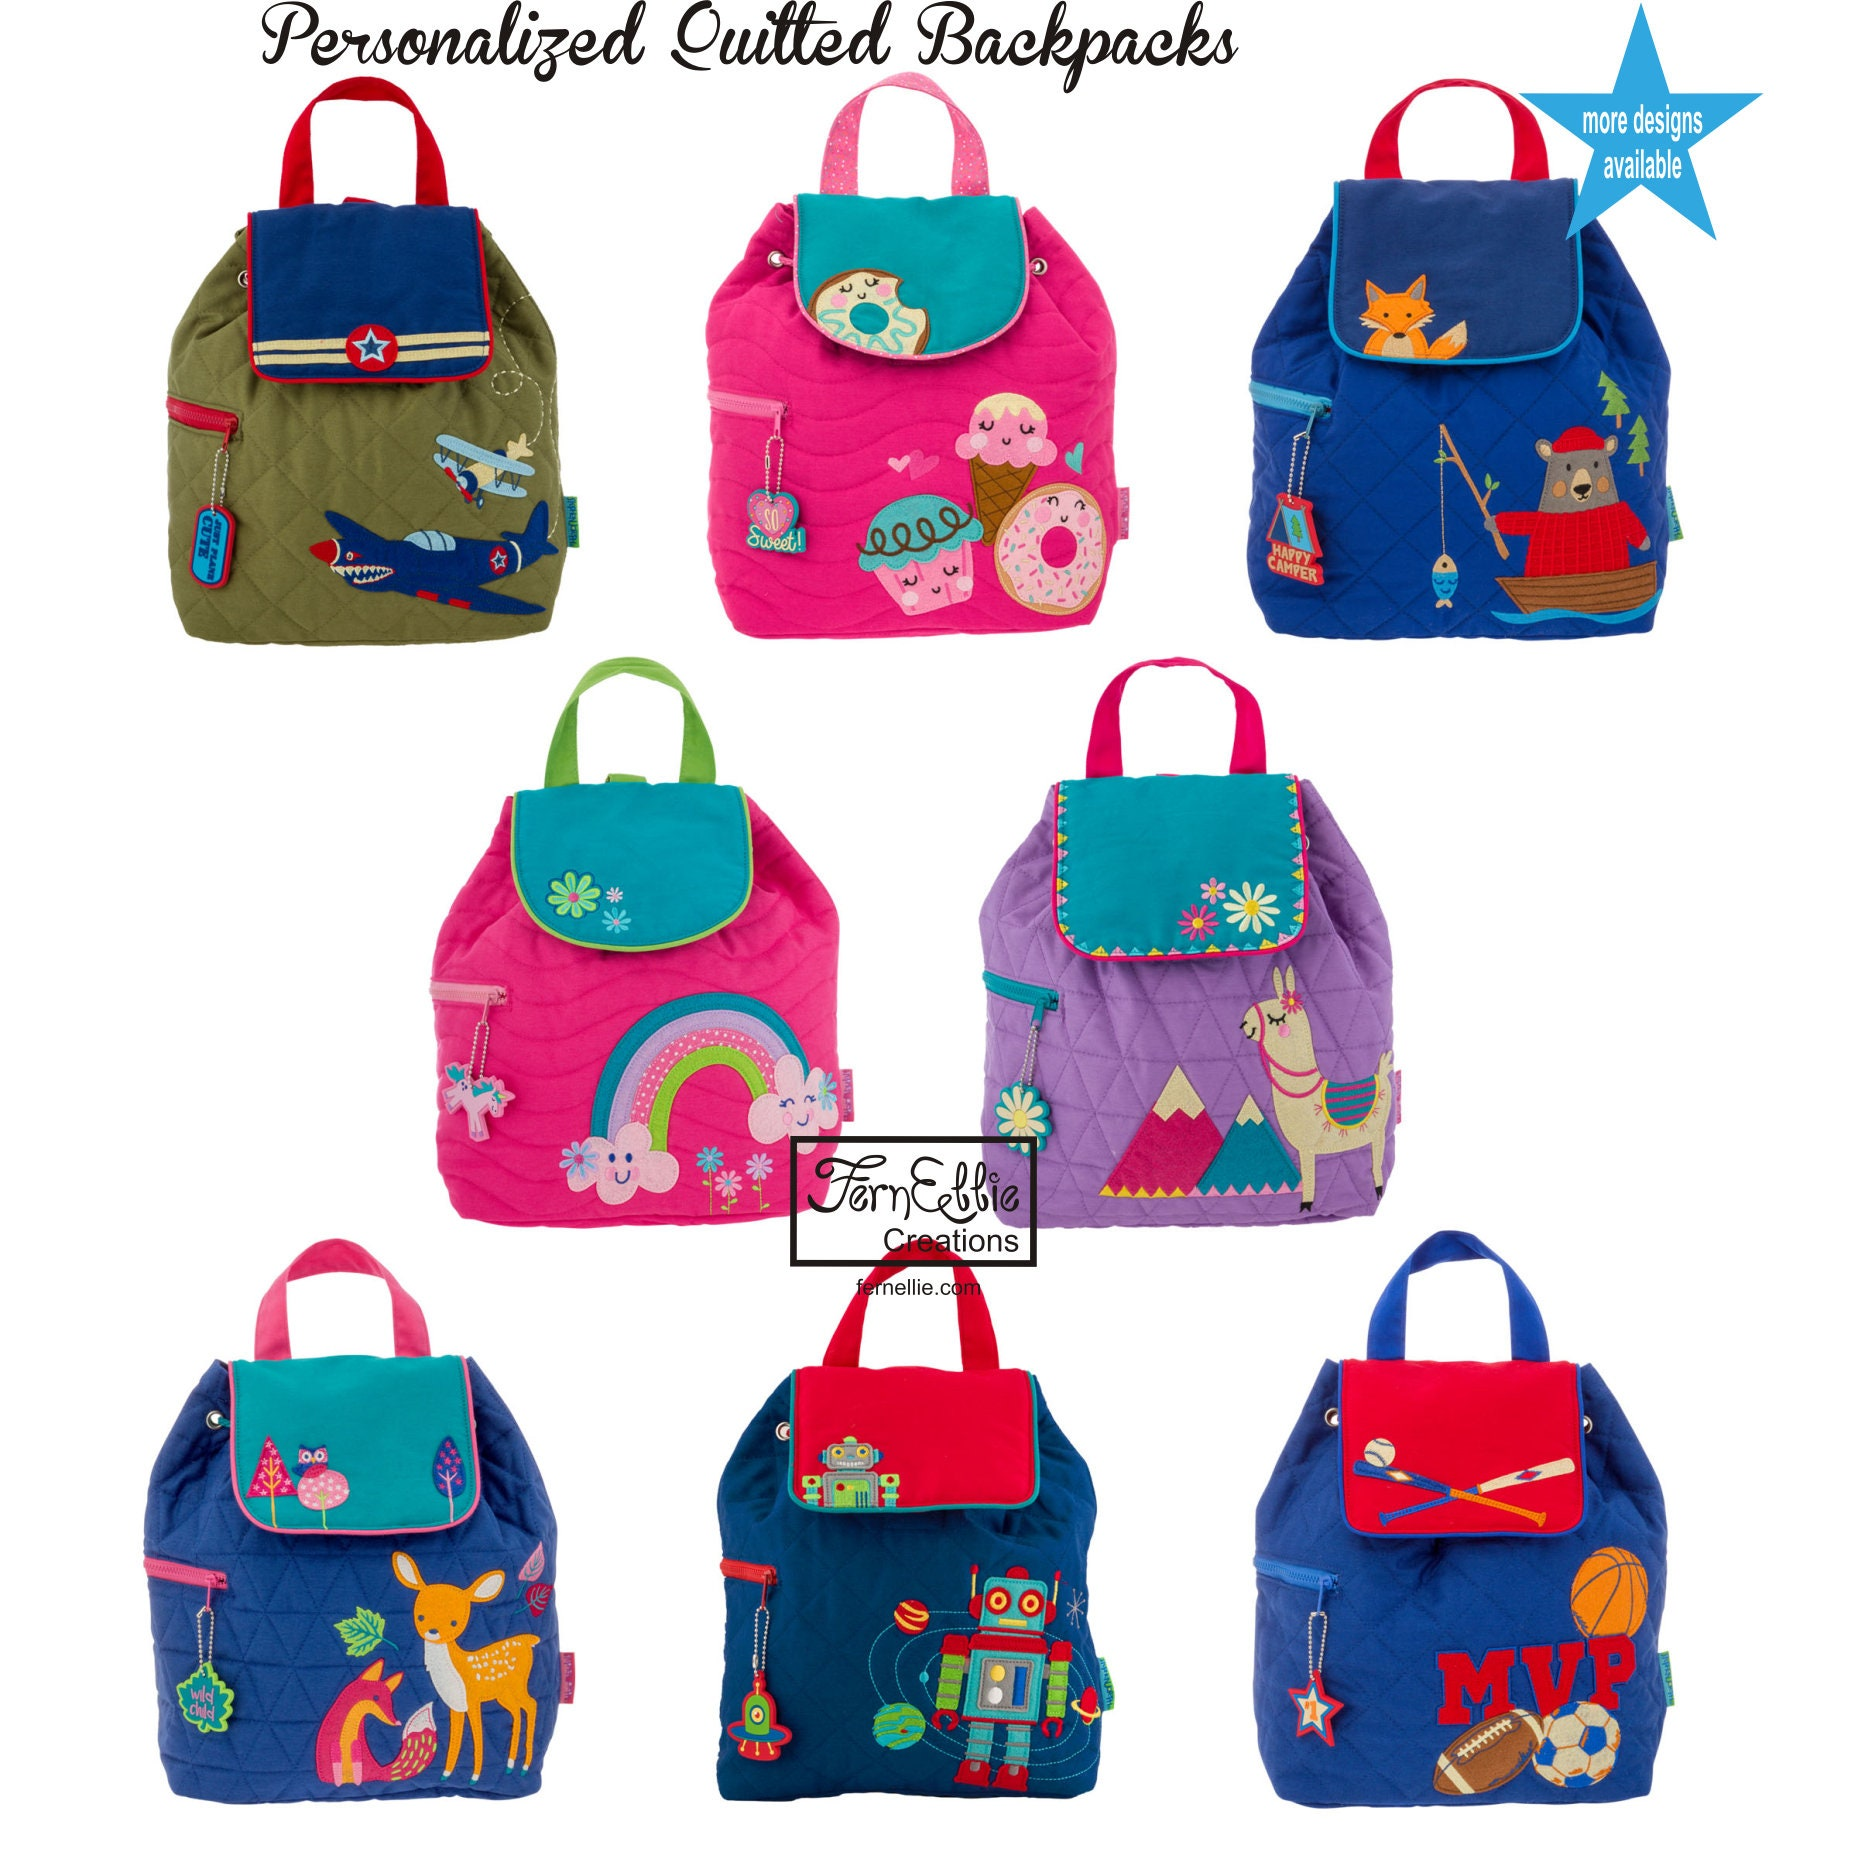 54d0a2a724e9 Personalized Children's Quilted Backpack, Custom Embroidery ...